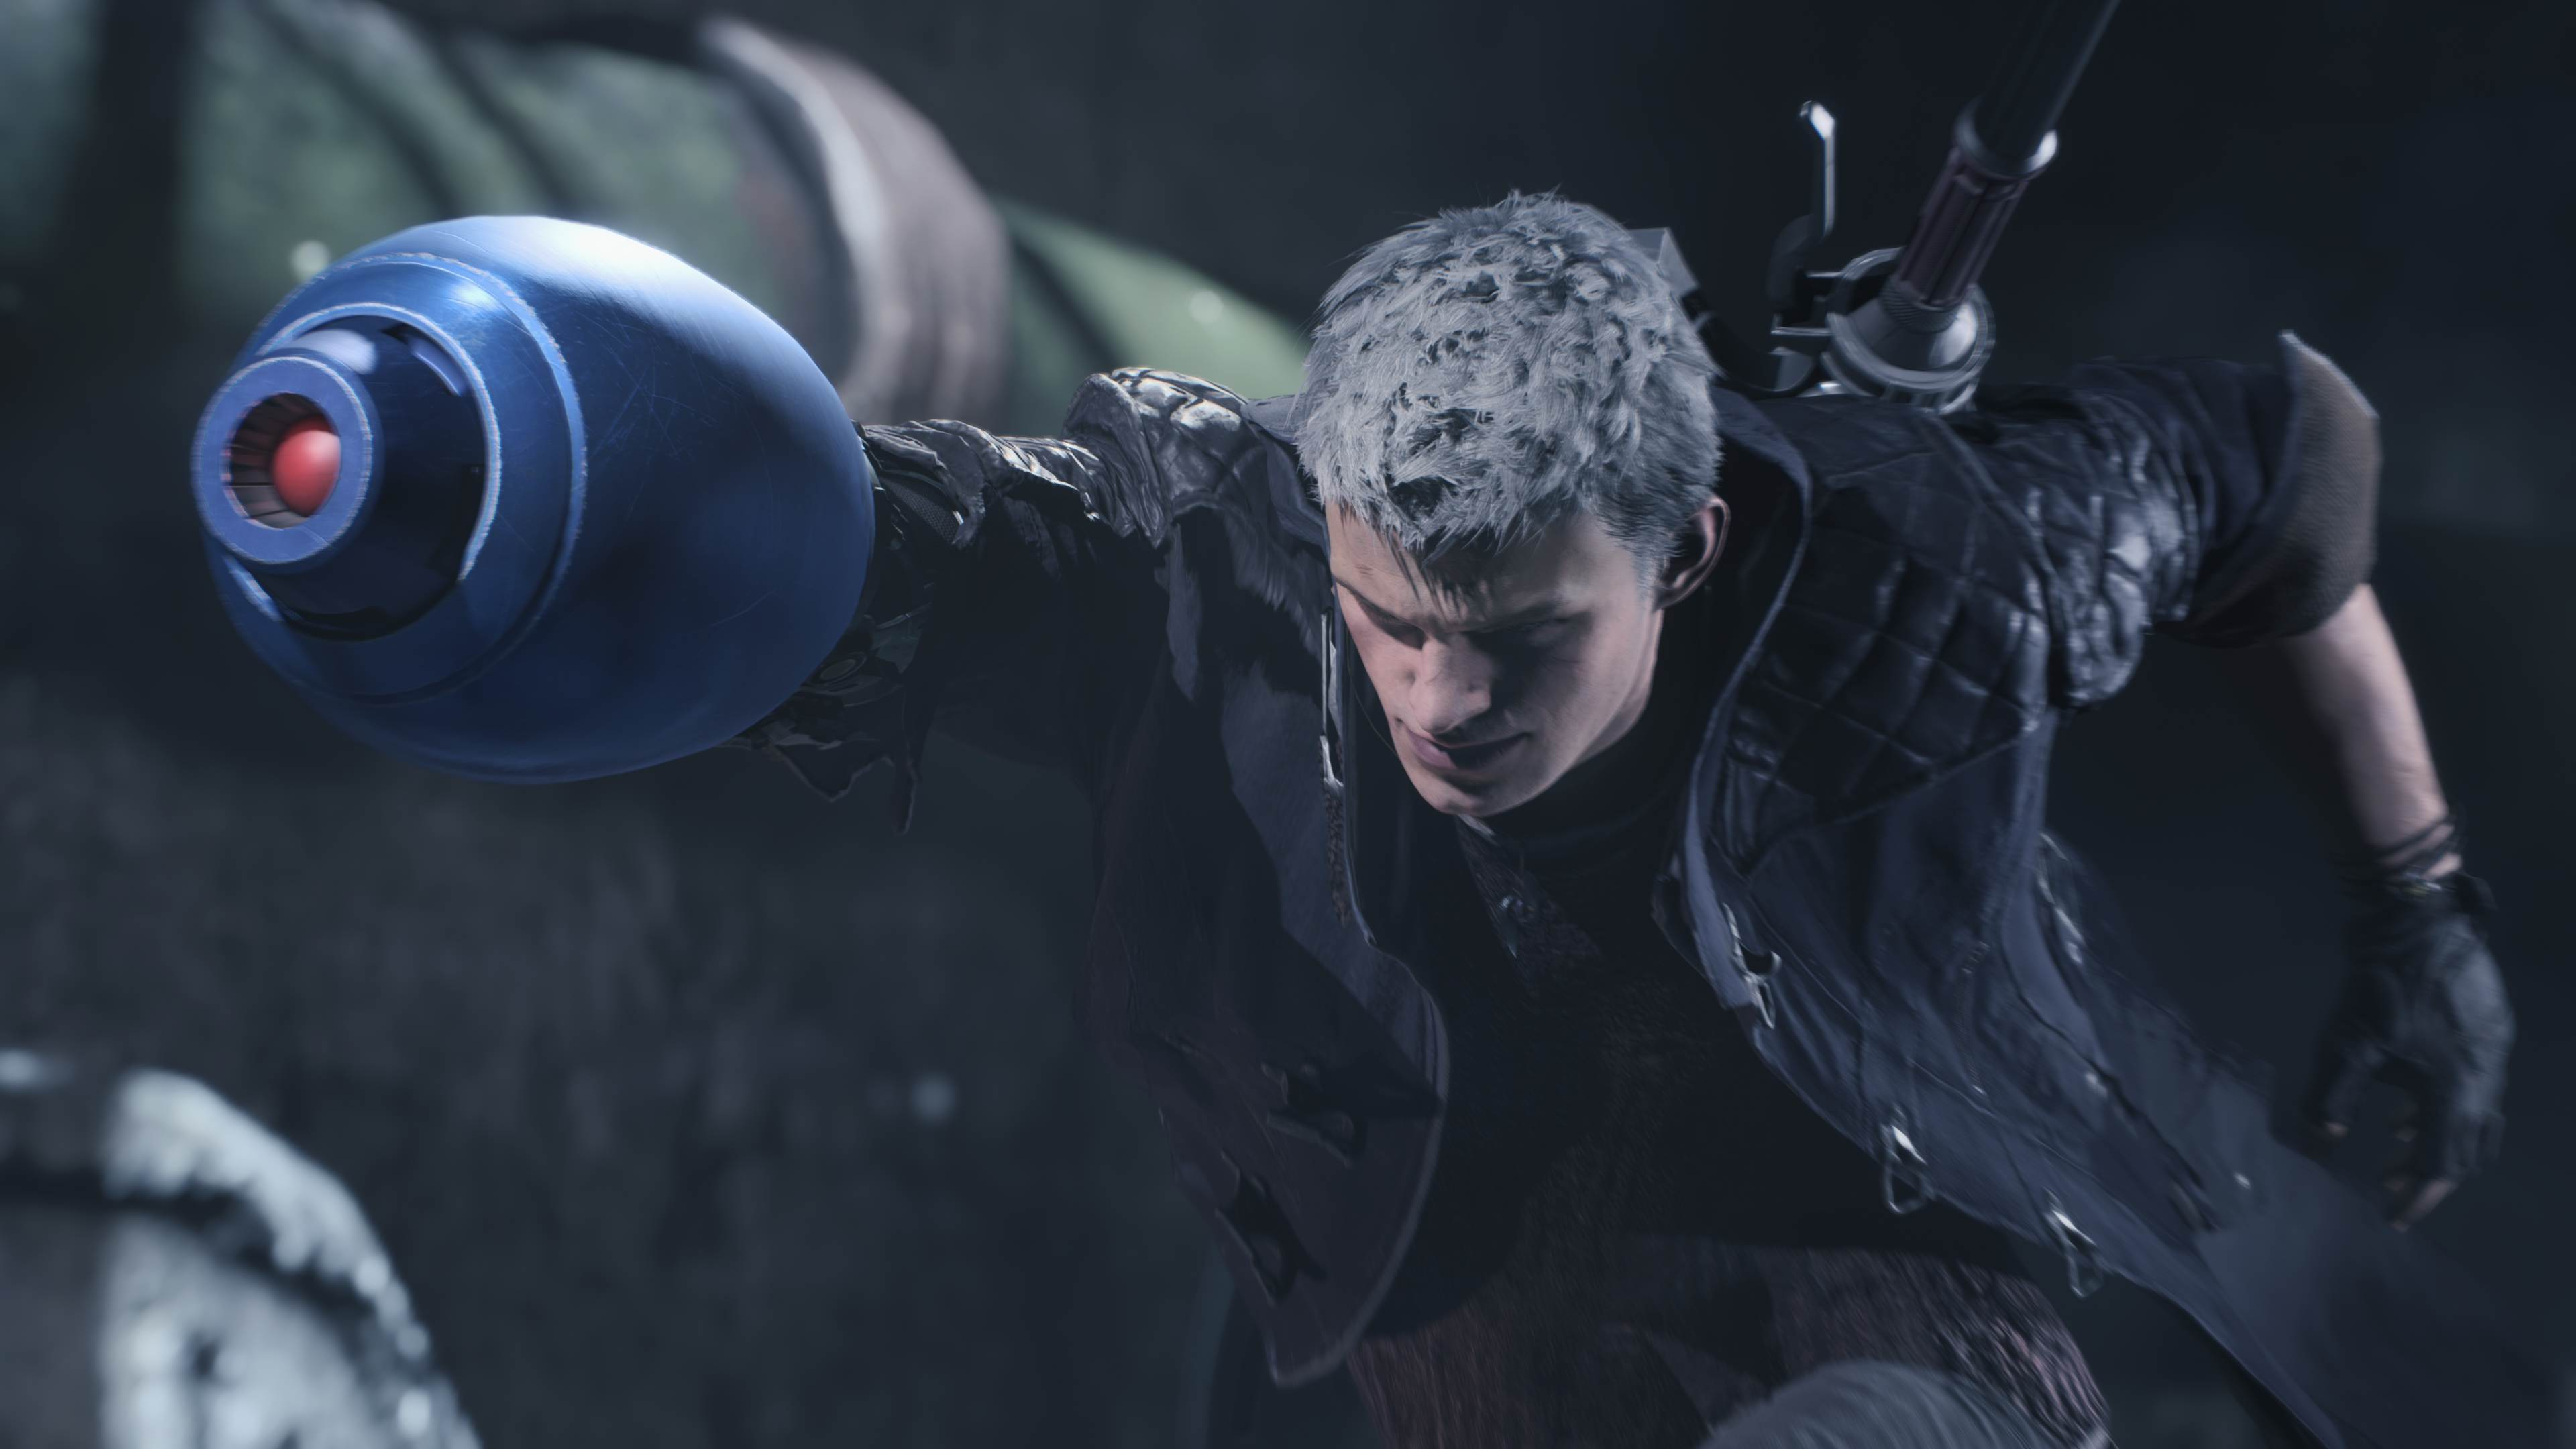 Nero Devil May Cry 5 2019 4k Hd Games 4k Wallpapers